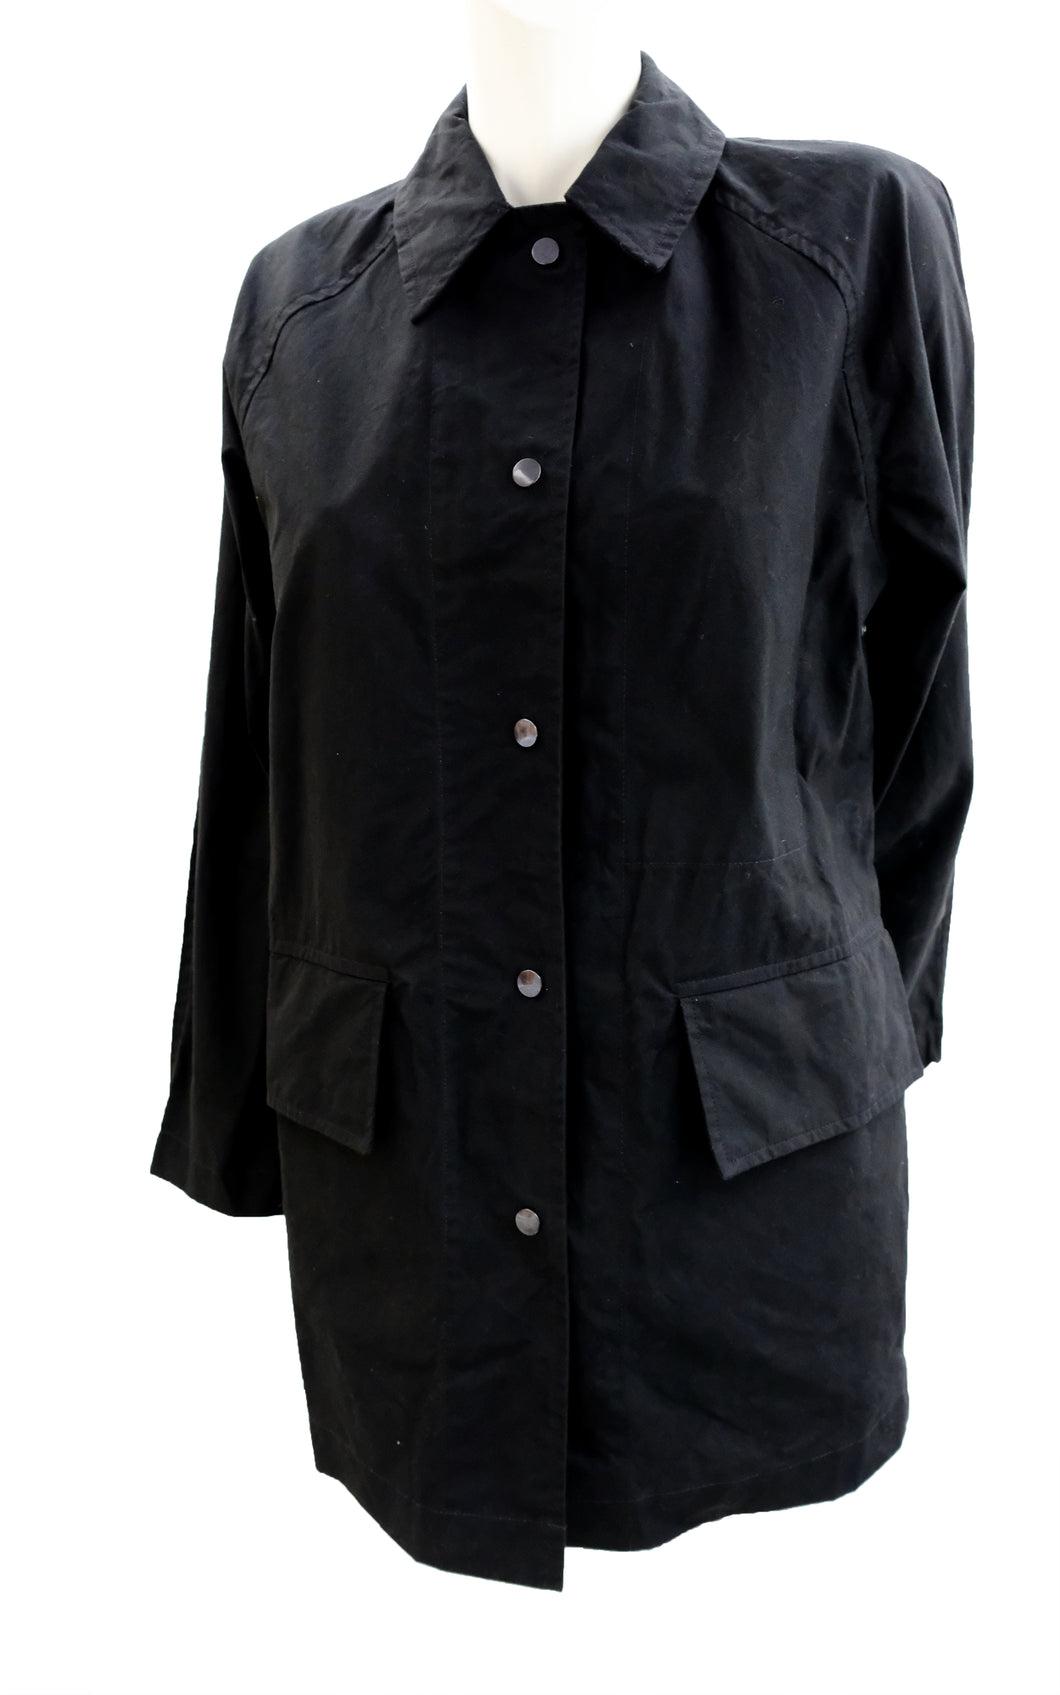 Margaret Howell MHL Classic Raincoat in  Black Cotton, UK10